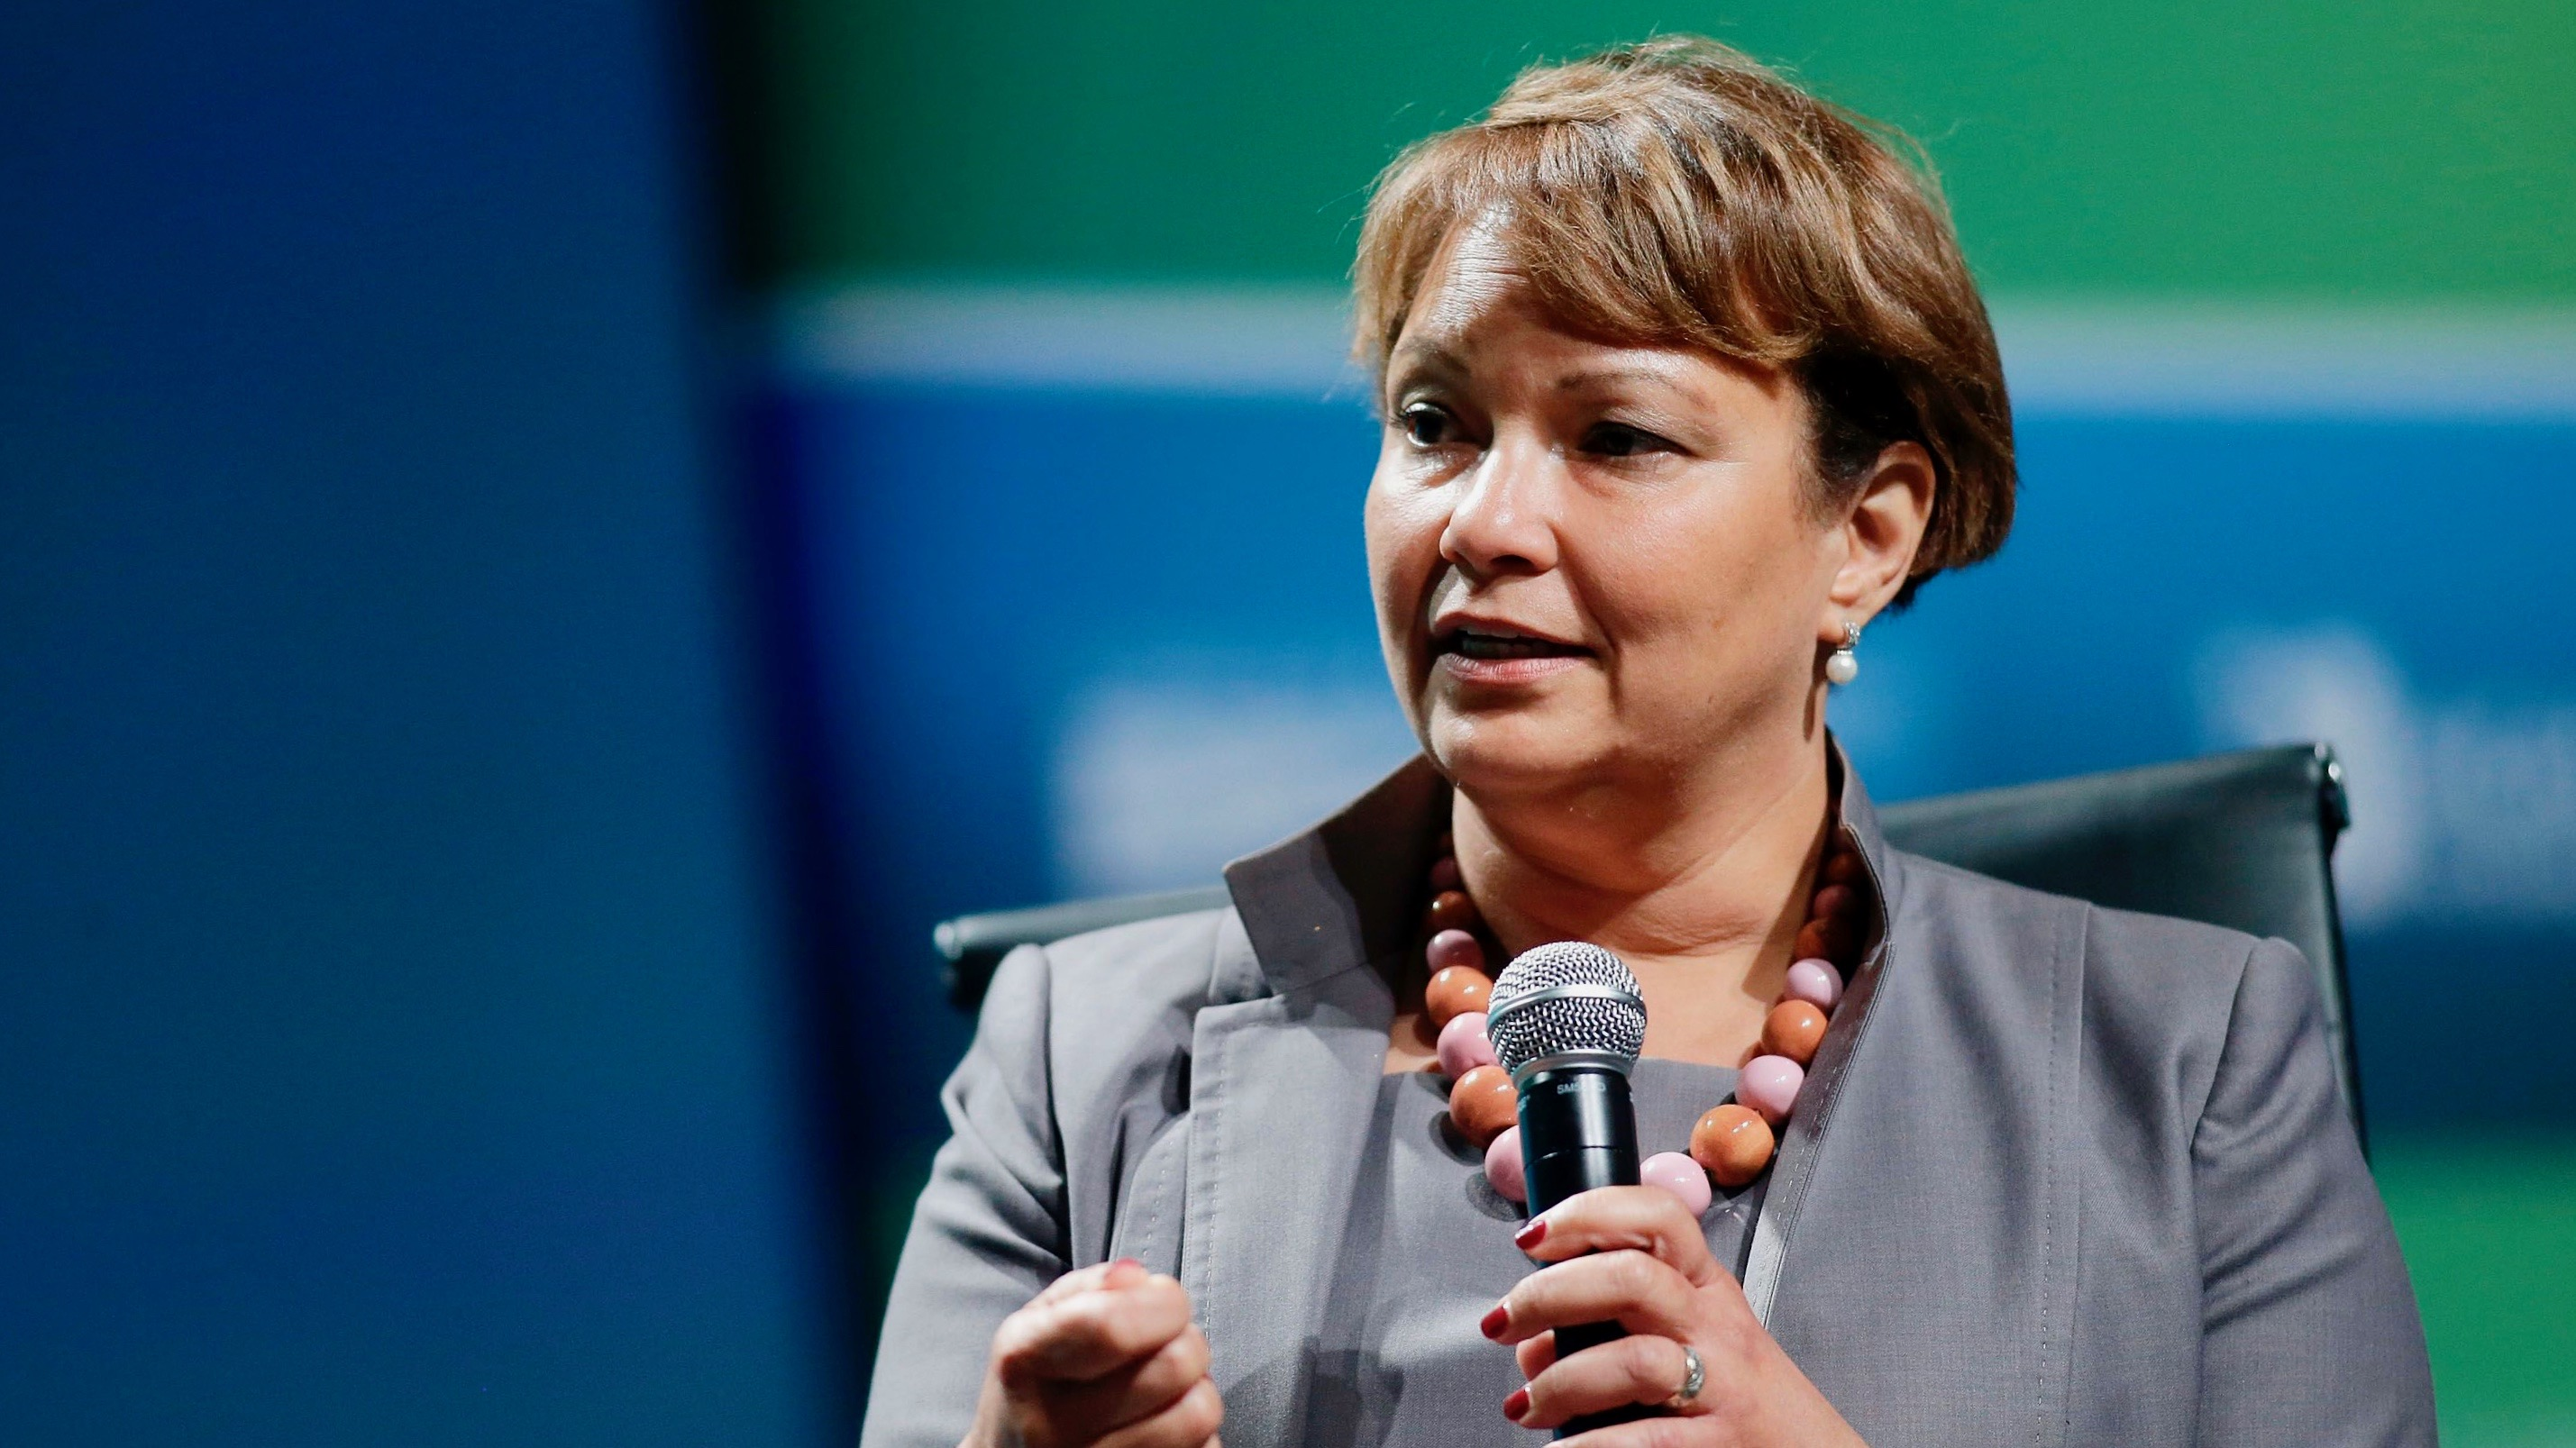 Apple to invest in mangrove forest protection and restoration in Colombia, Lisa Jackson says